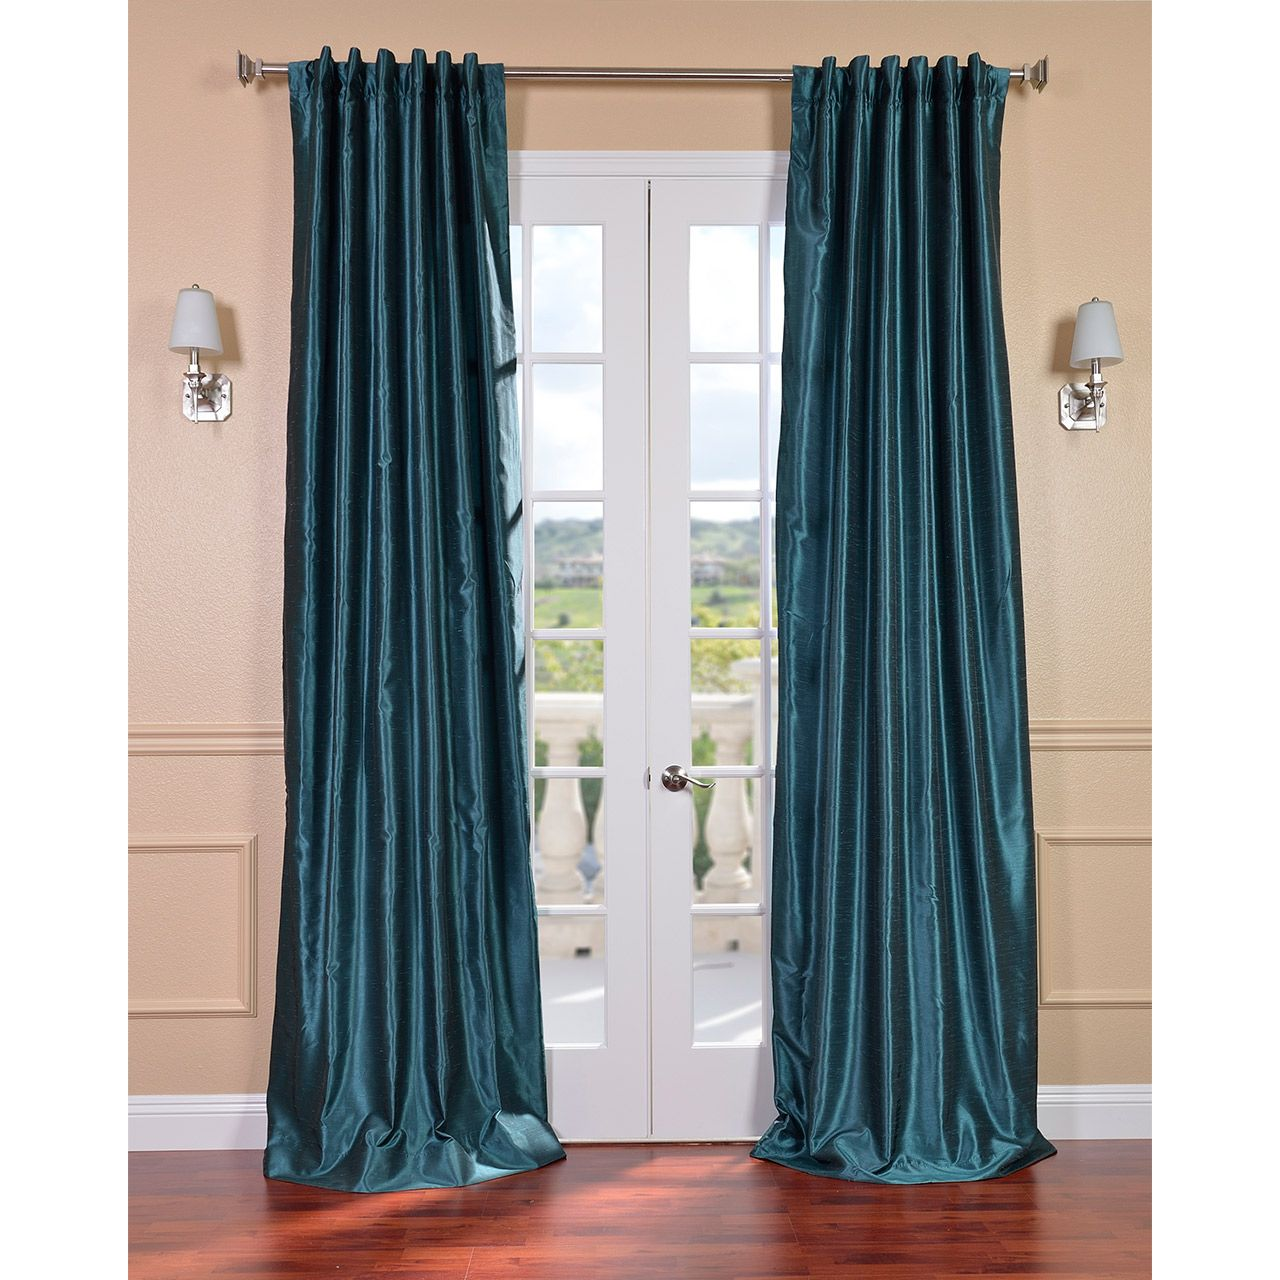 b3f961feb04d9b2cc0a44abc291d3a50 - Better Homes And Gardens Crushed Taffeta Curtain Panel